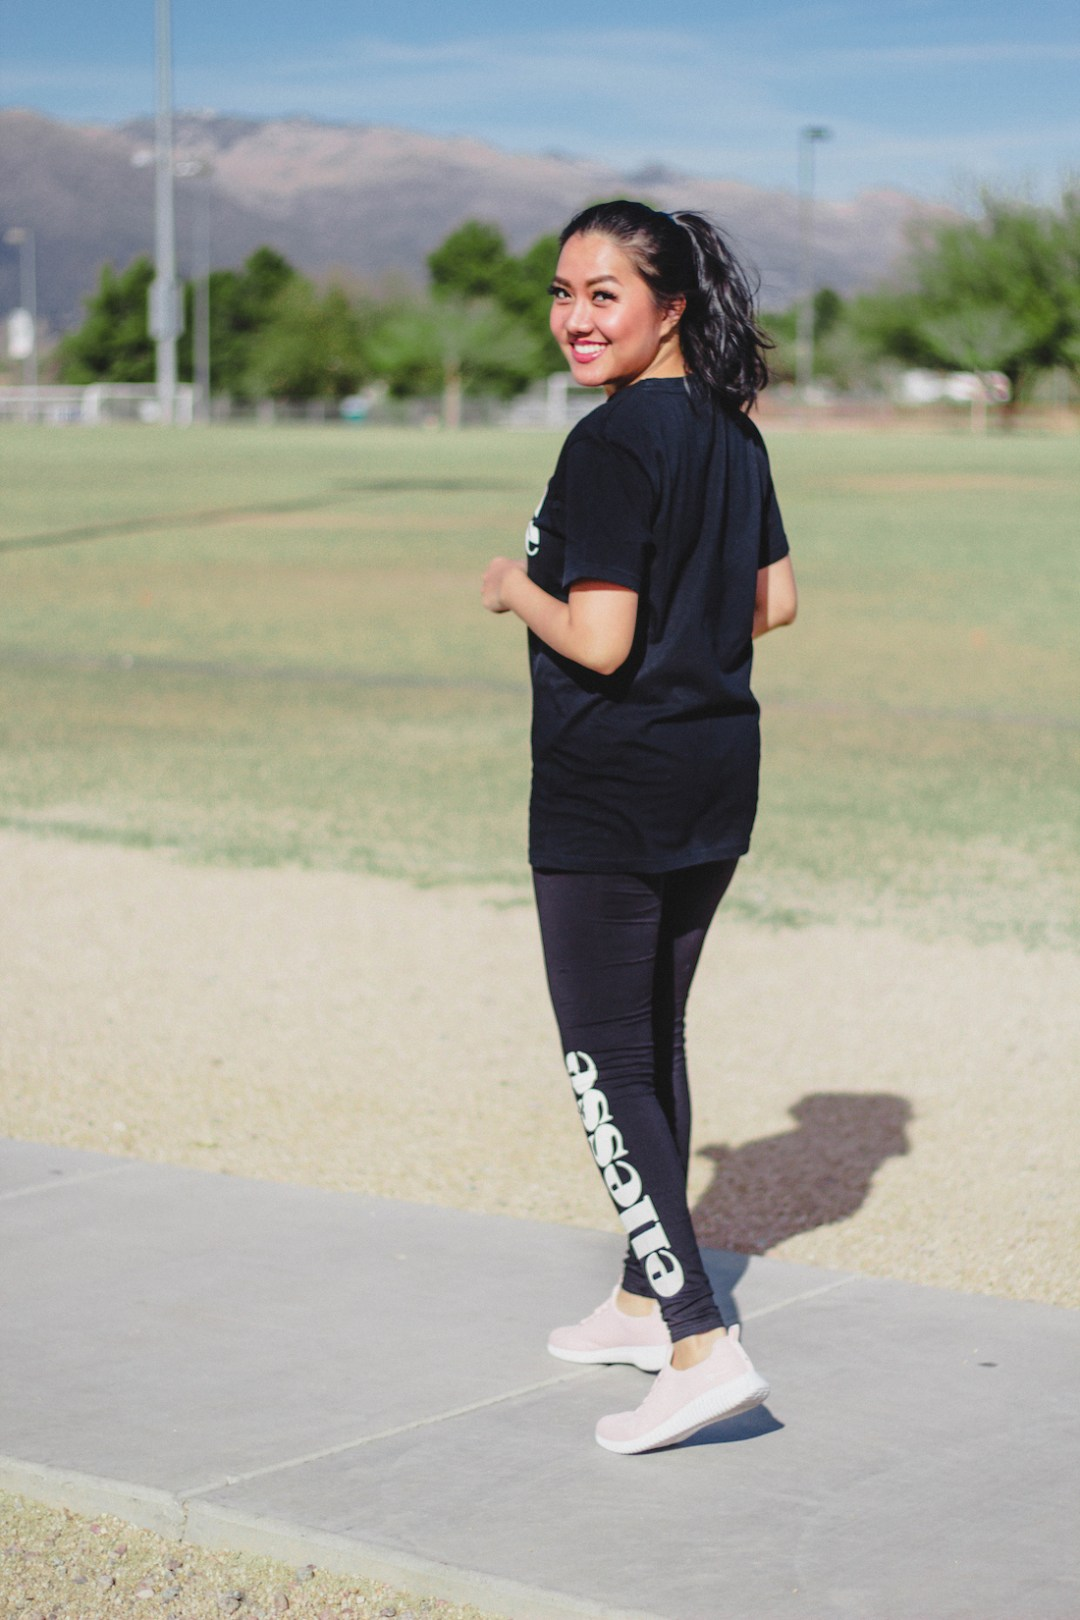 Women wearing active wear Hypoglycemia-Staying-Active-Getting-Ready-For-Pregnancy-AllAboutGoodVibes.com